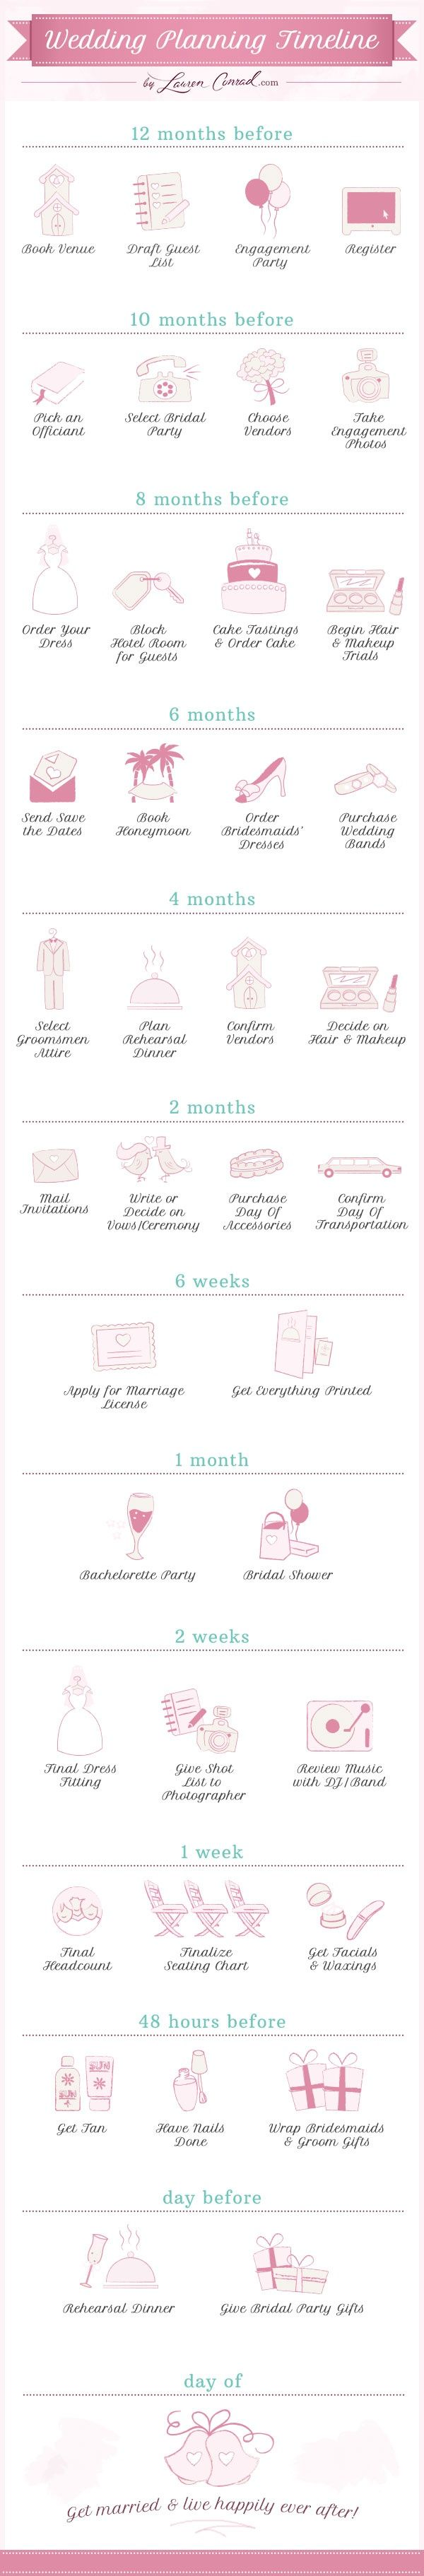 Wedding Planning Timeline. Get ready for your special day!\